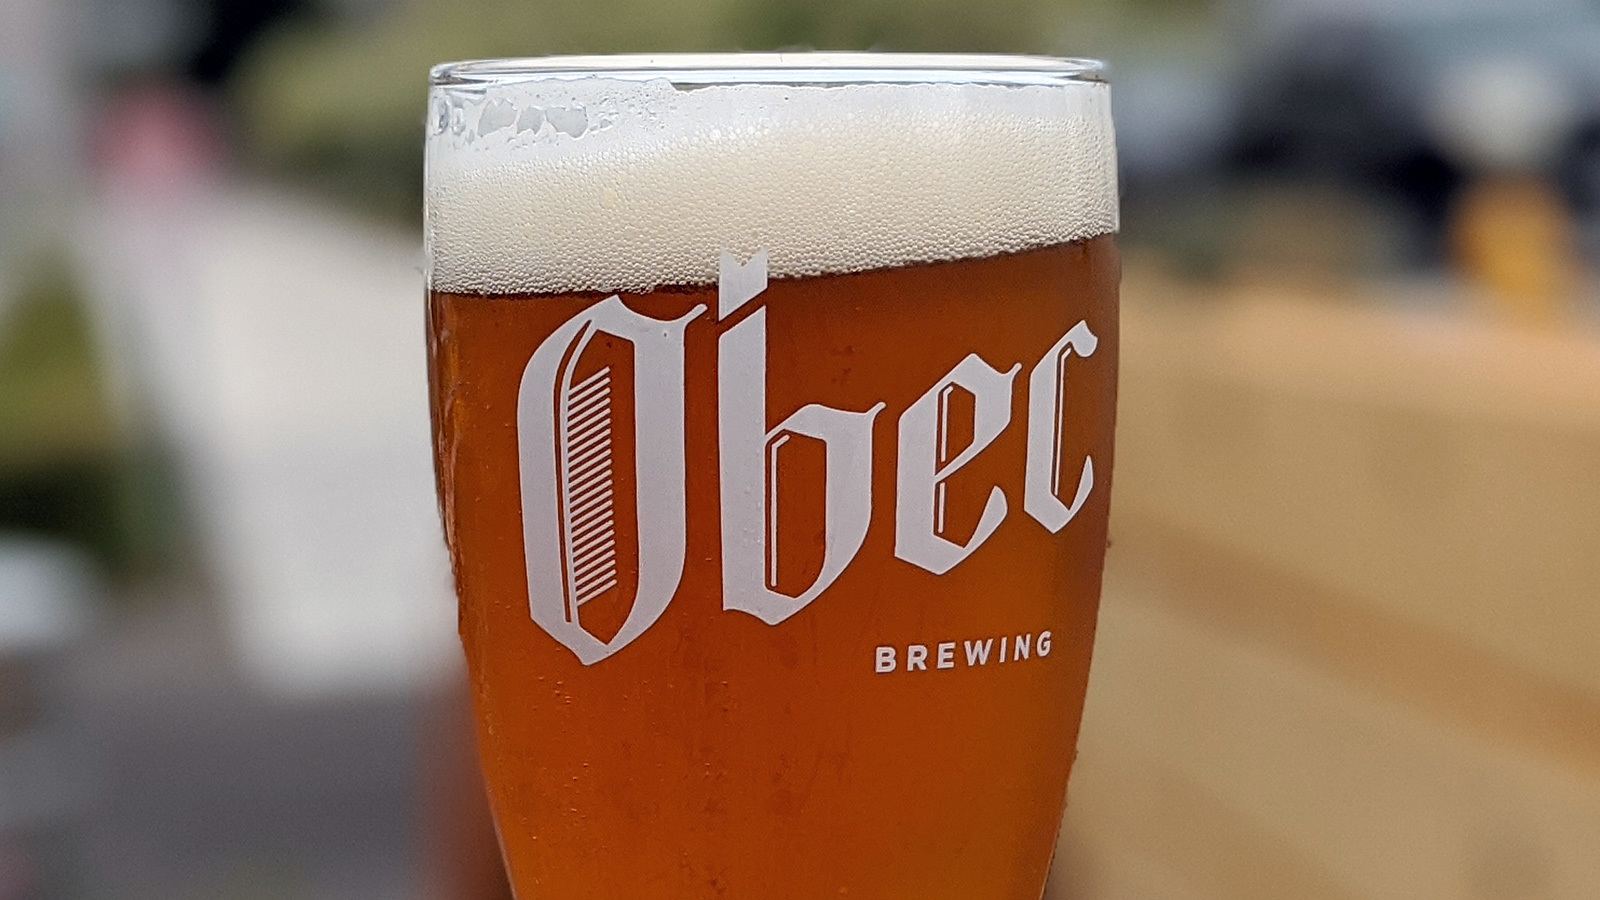 A glass of beer prominently displaying the Obec Brewing logo